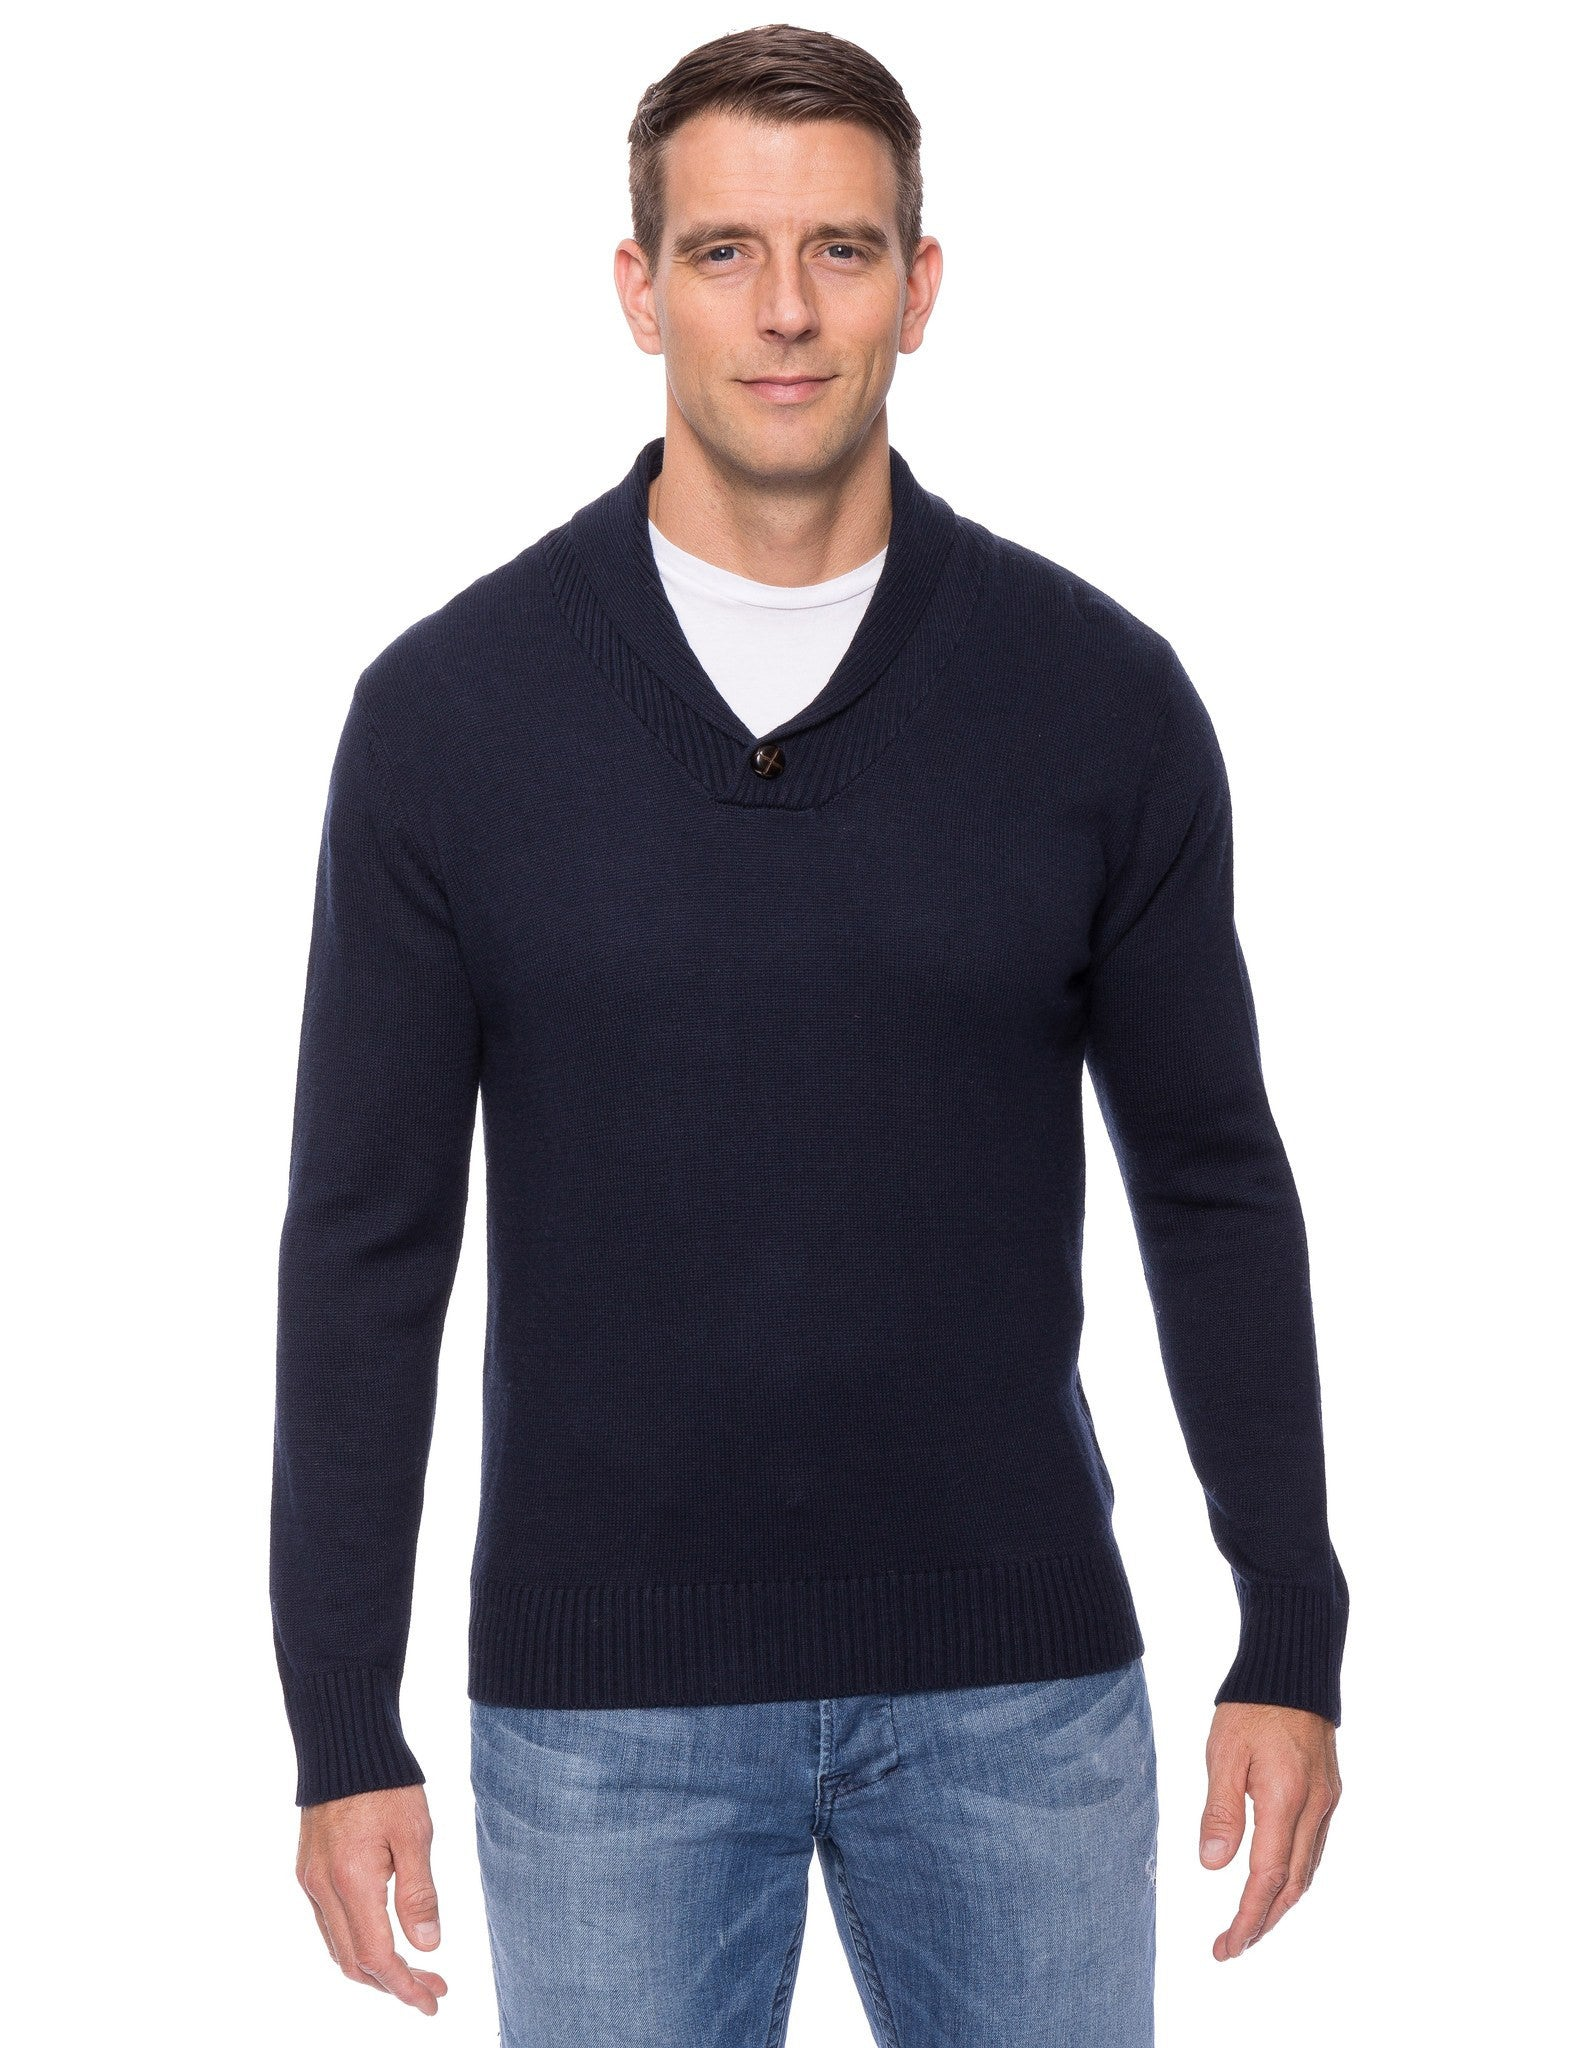 Cashmere Blend Shawl Collar Pullover Sweater - Navy